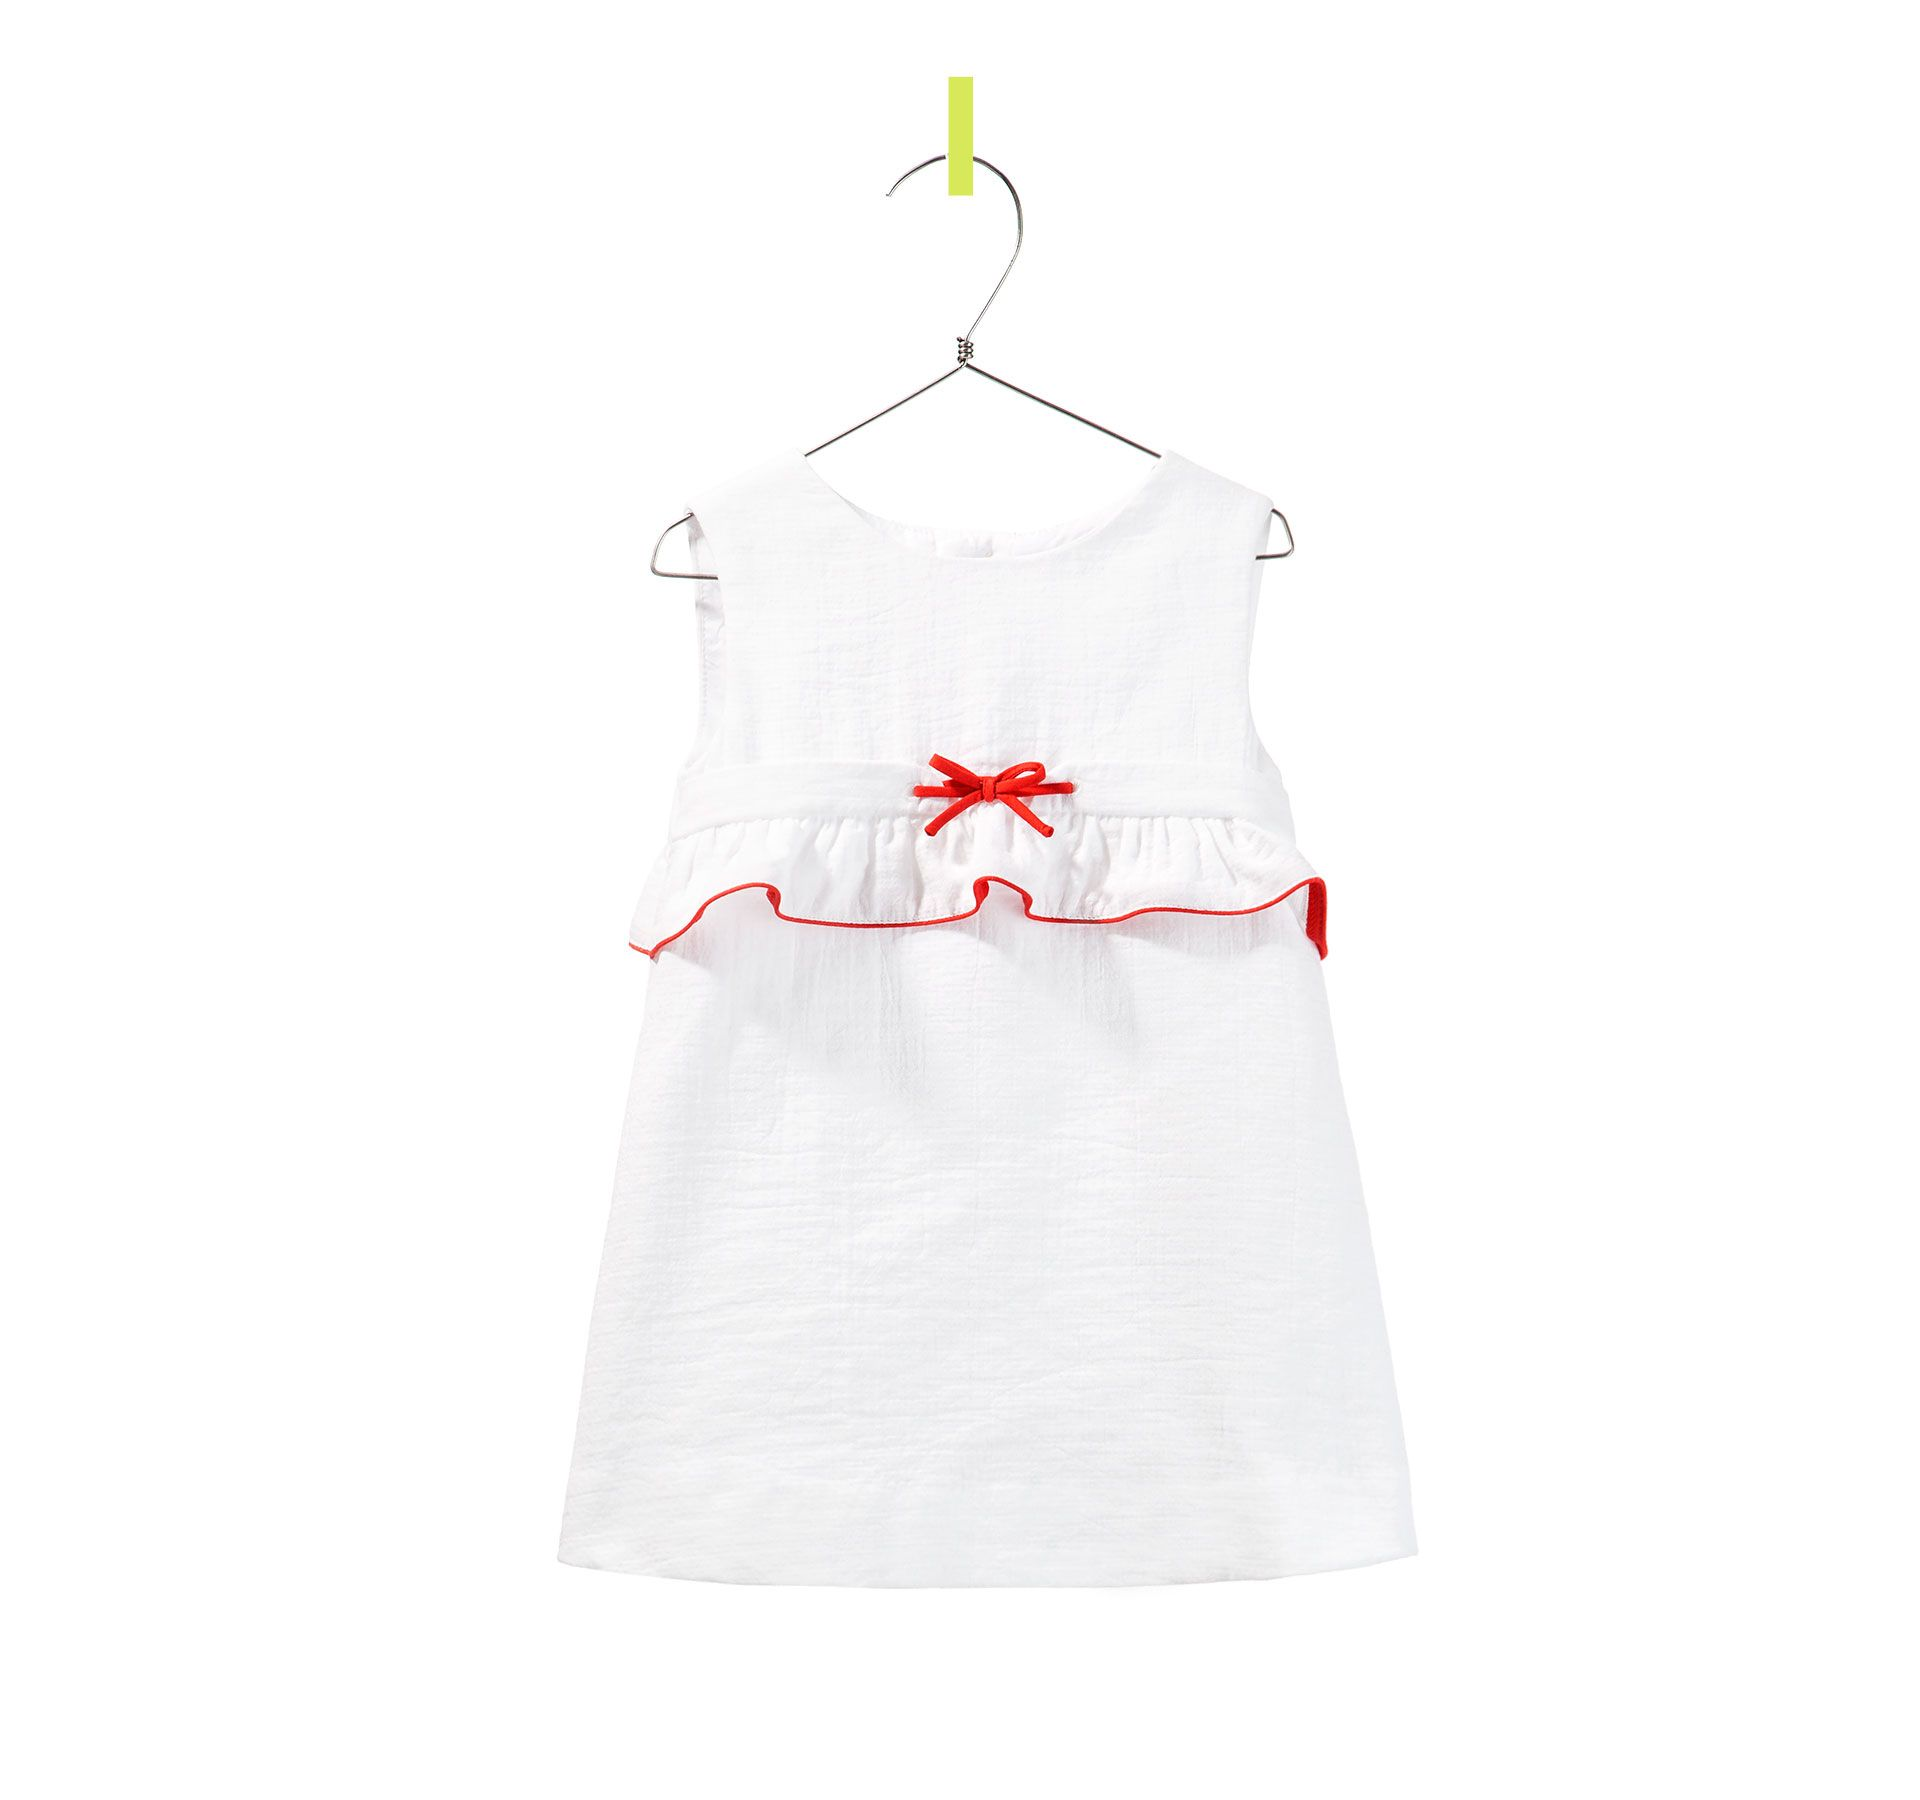 DRESS WITH RED PIPING Dresses Baby girl Kids